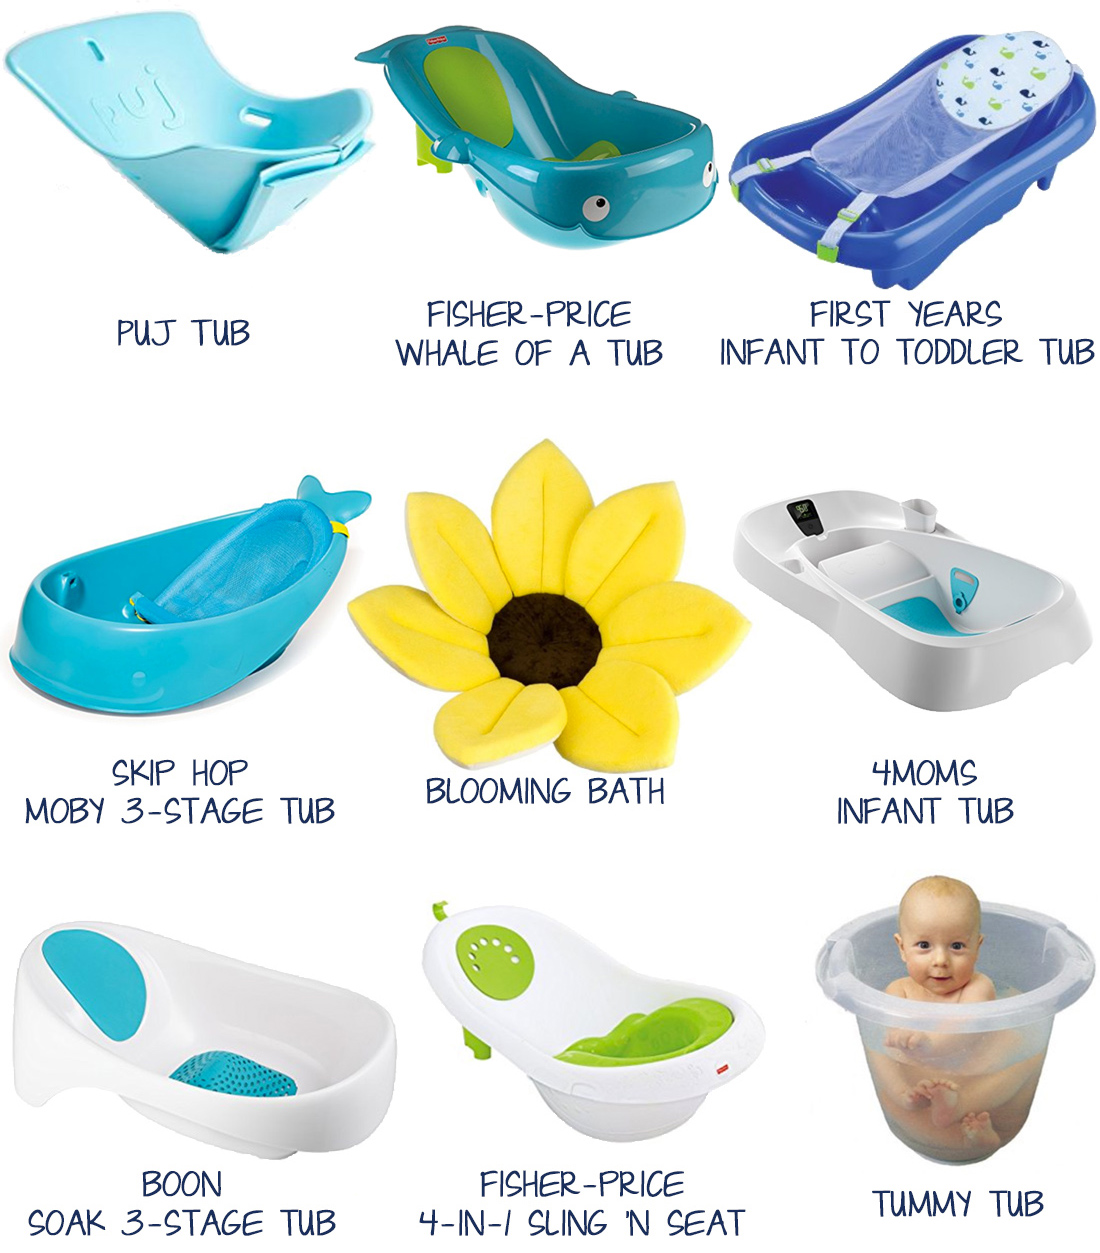 b11558bbdc8 Best Infant Baby Bath Tubs (Puj Tub